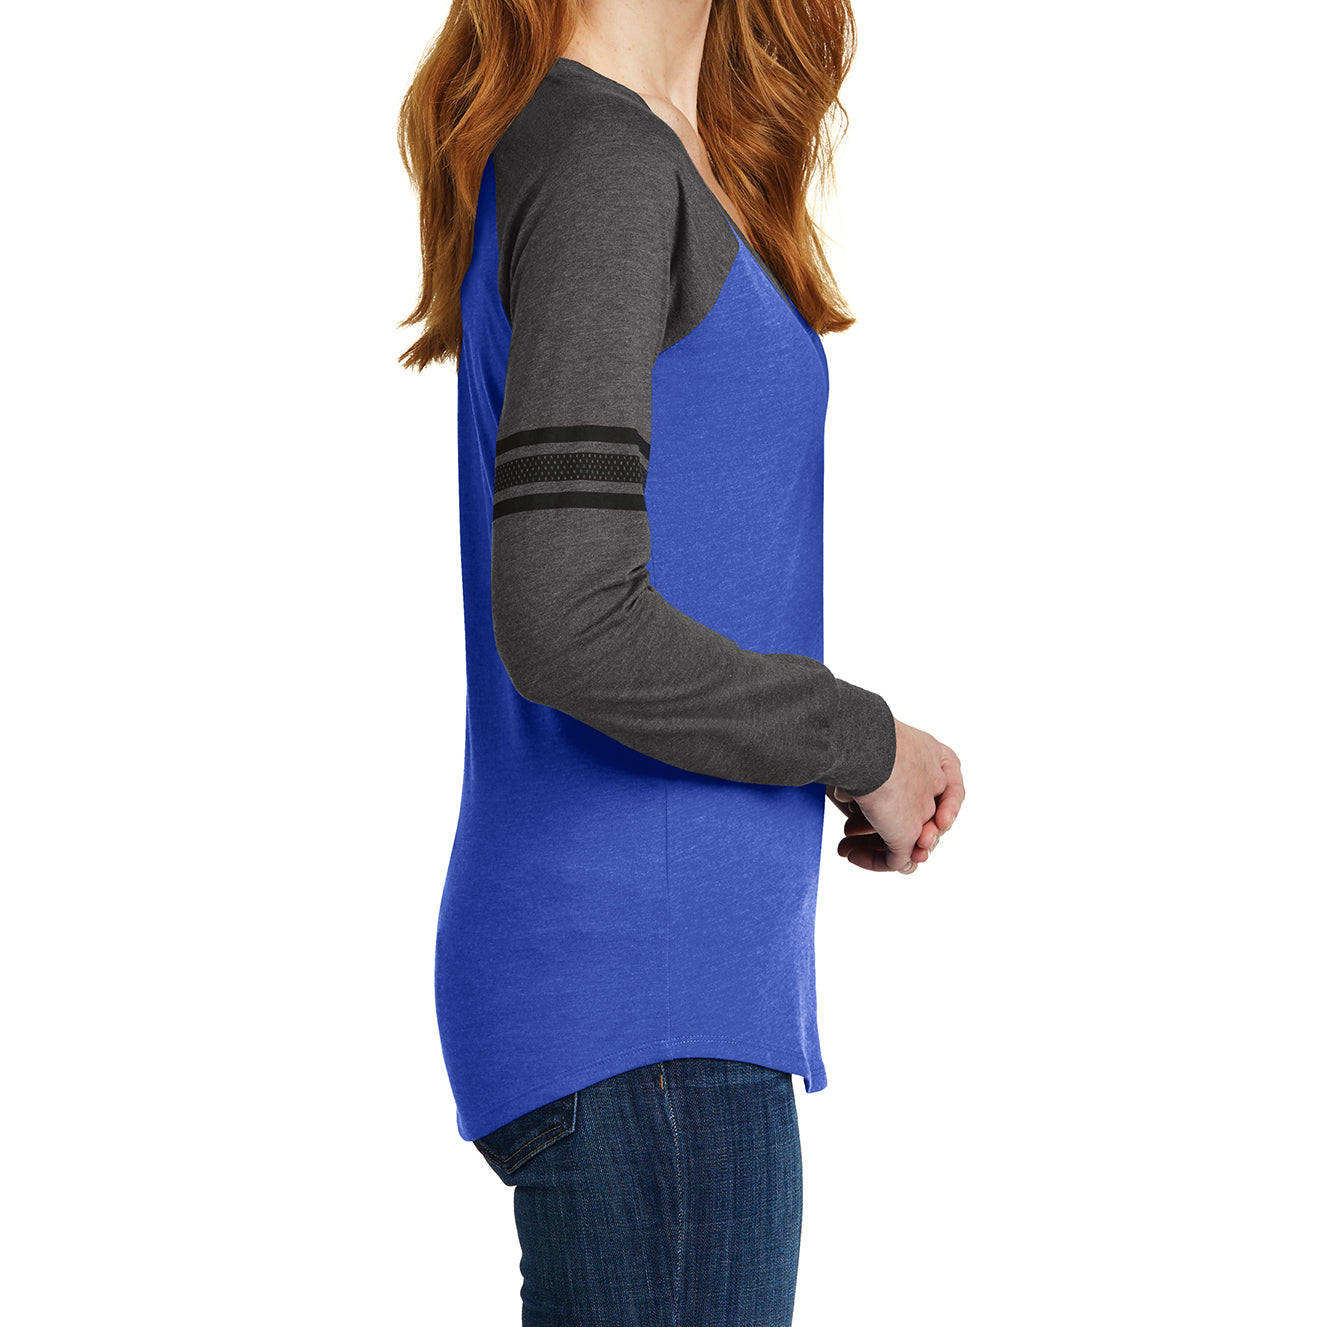 Women's Game Long Sleeve V-Neck Tee - Heathered True Royal/ Heathered Charcoal/ Black -  Side